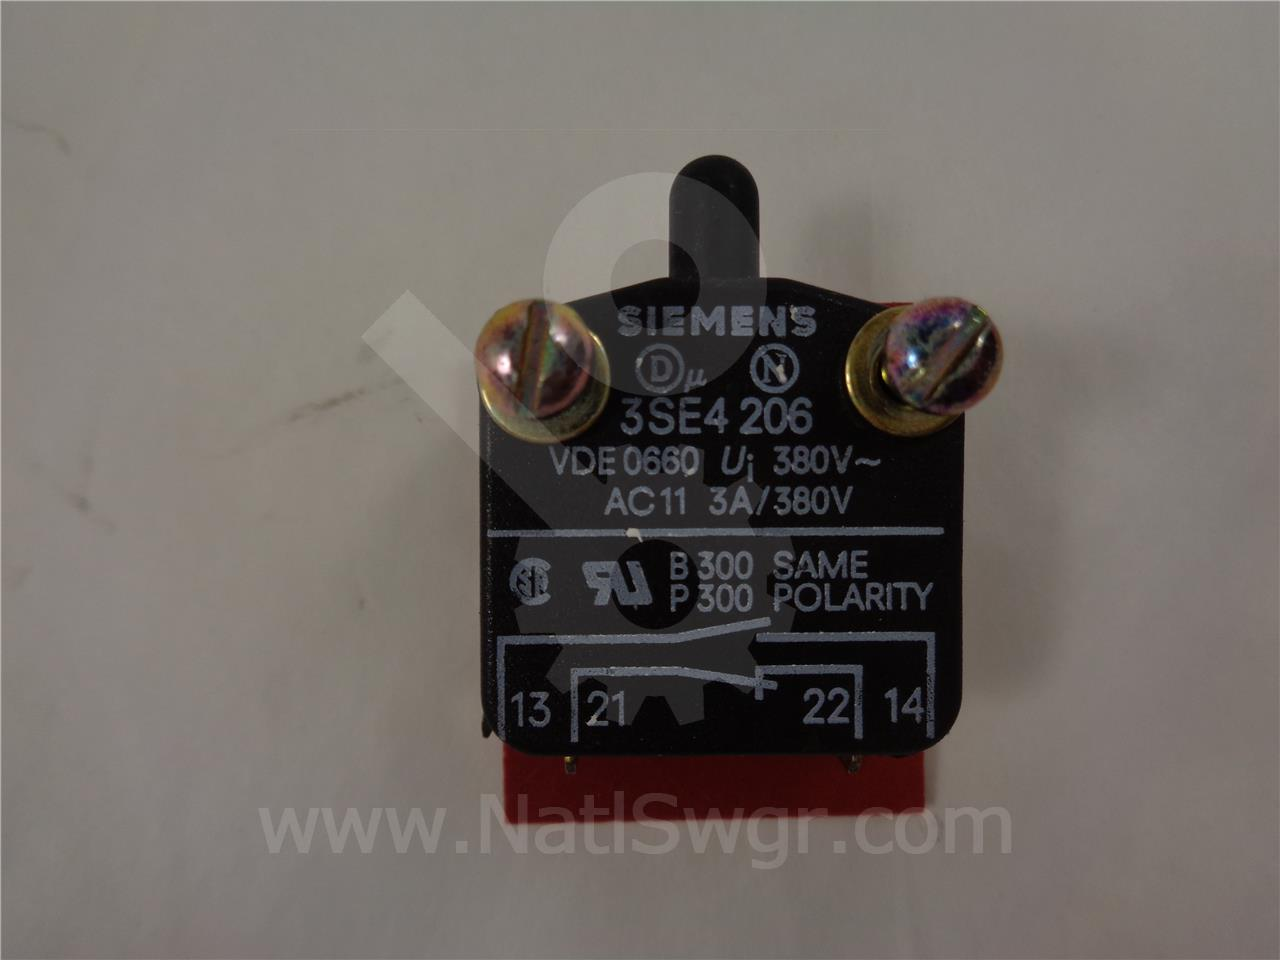 18-398-289-551 Siemens / Allis Chalmers COMMUNICATION HARNESS ASSEMBLY FOR RL WITH STATIC TRIP III